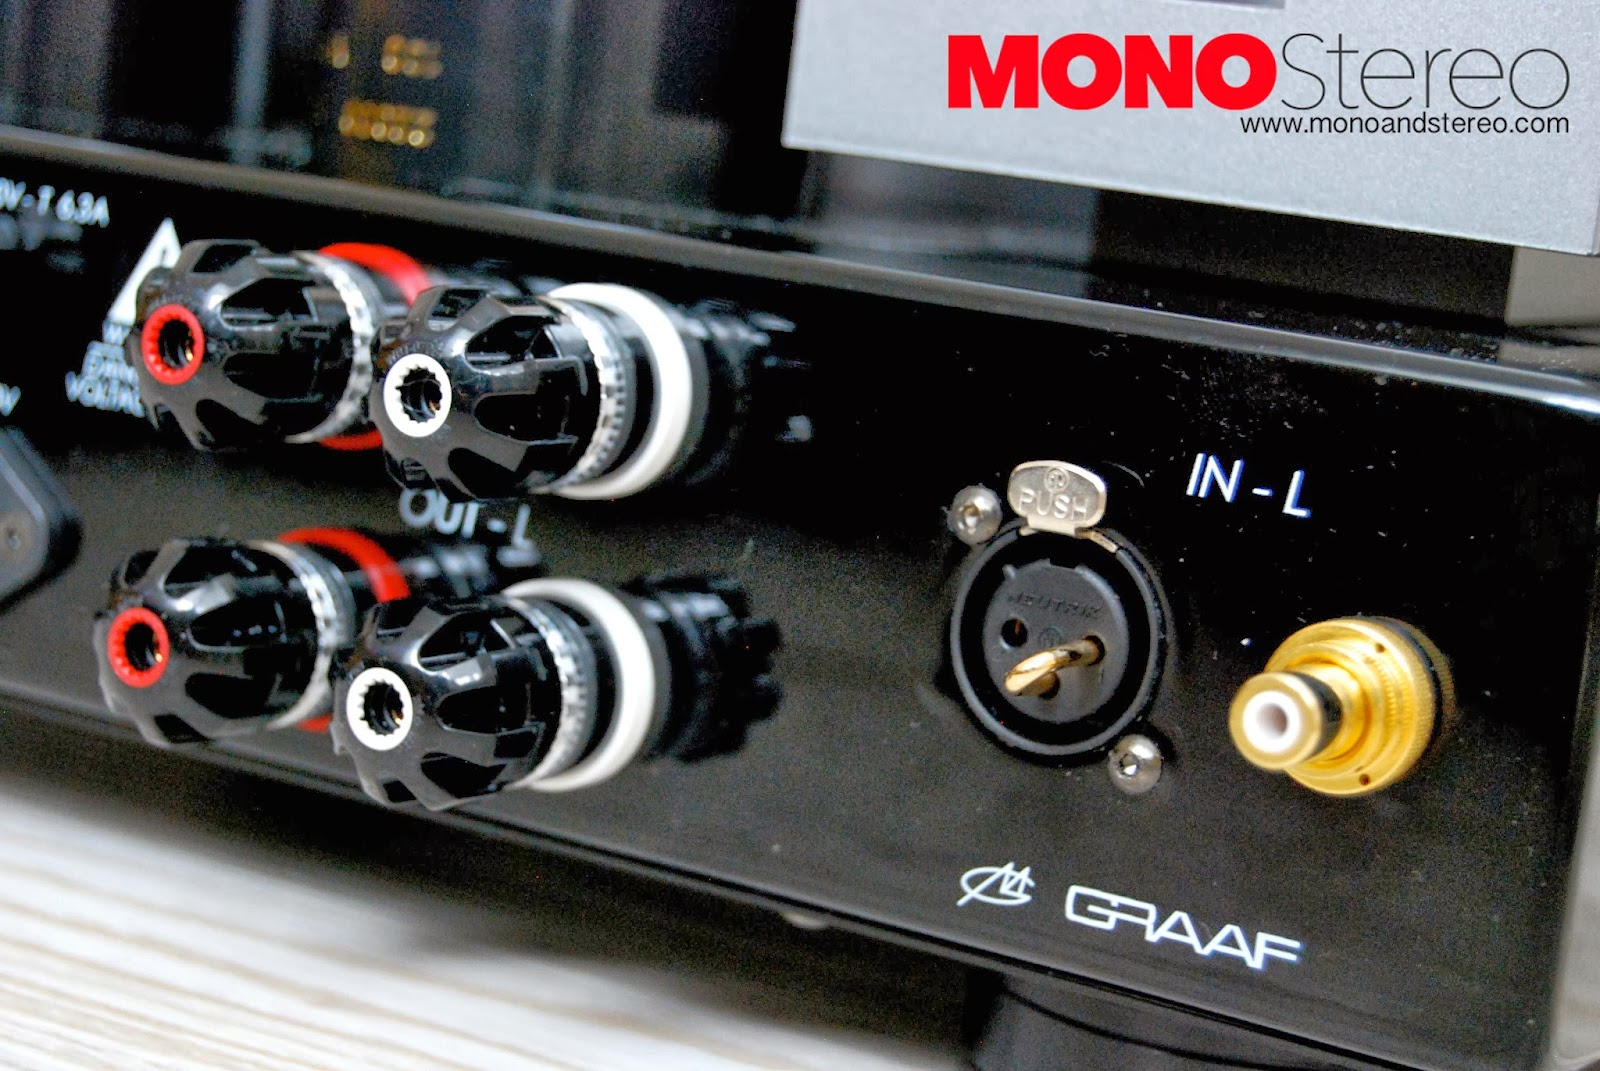 Mono And Stereo High End Audio Magazine Graaf Gm 400 Power Transistored 10w Amplifier Schematic Design Mr Mariani New Innovative Concept Being Used With The Gm400 Took Him Over 30 Years Of Rd After Innumerable Trials Research His Was